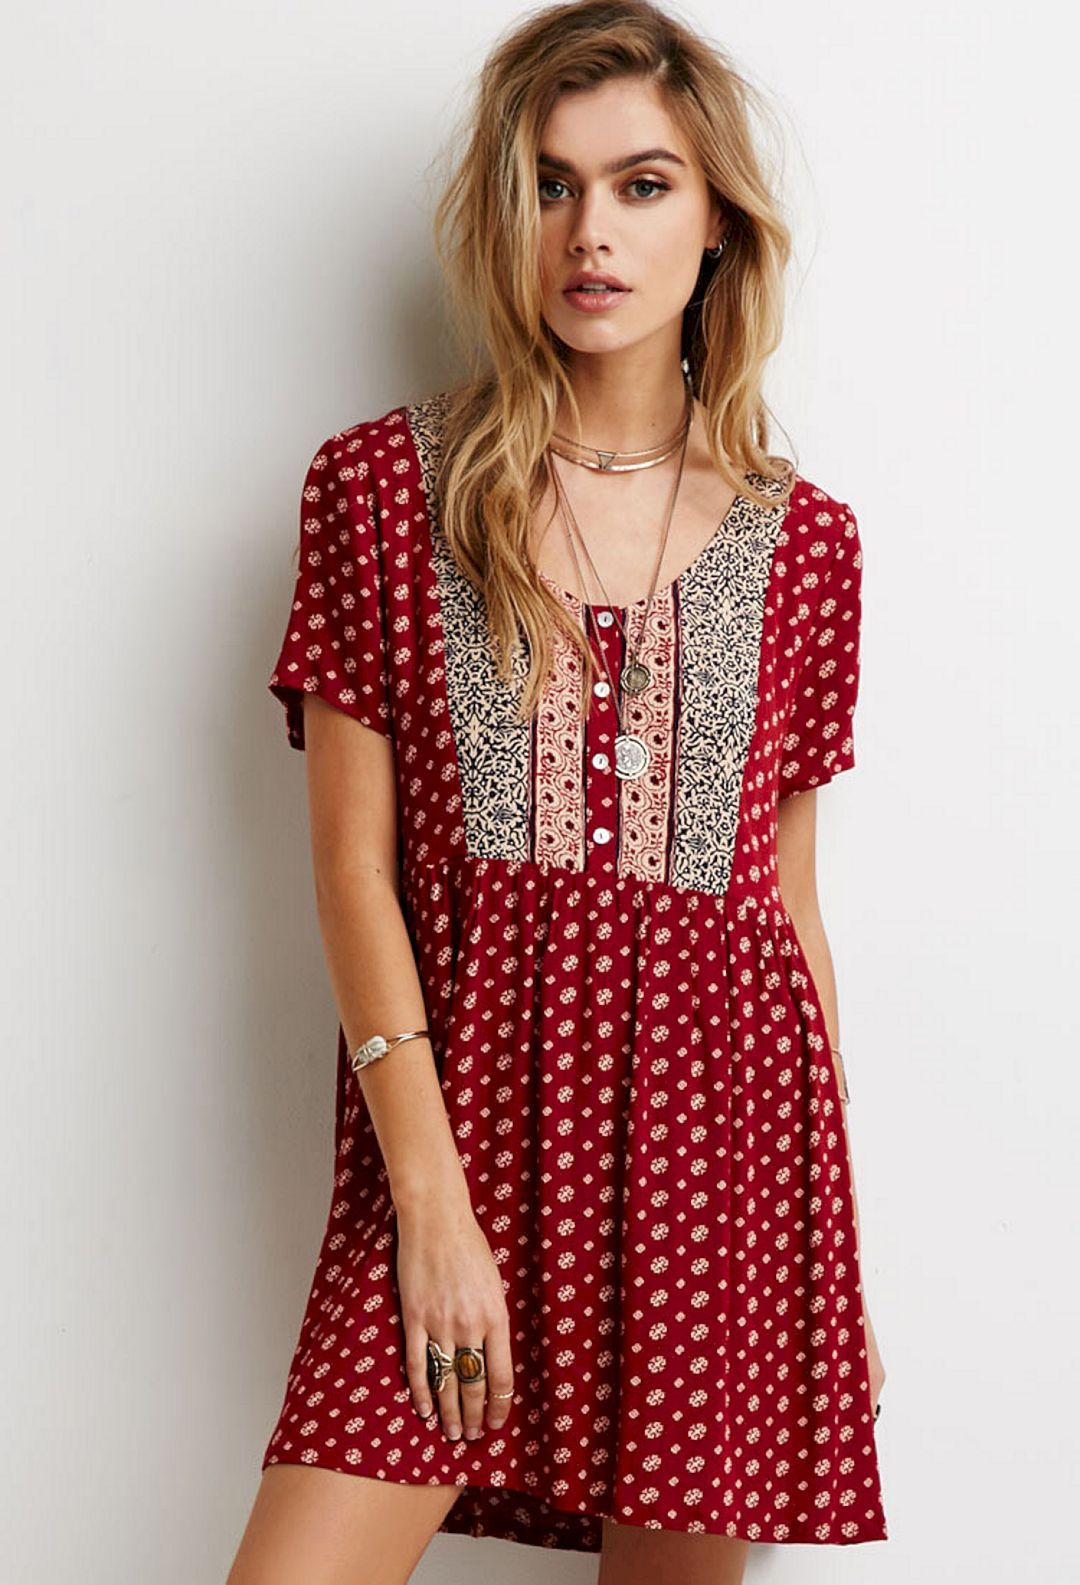 15 Popular and Lovely Womens Floral Print Dresses Outfit Ideas Spring Summer